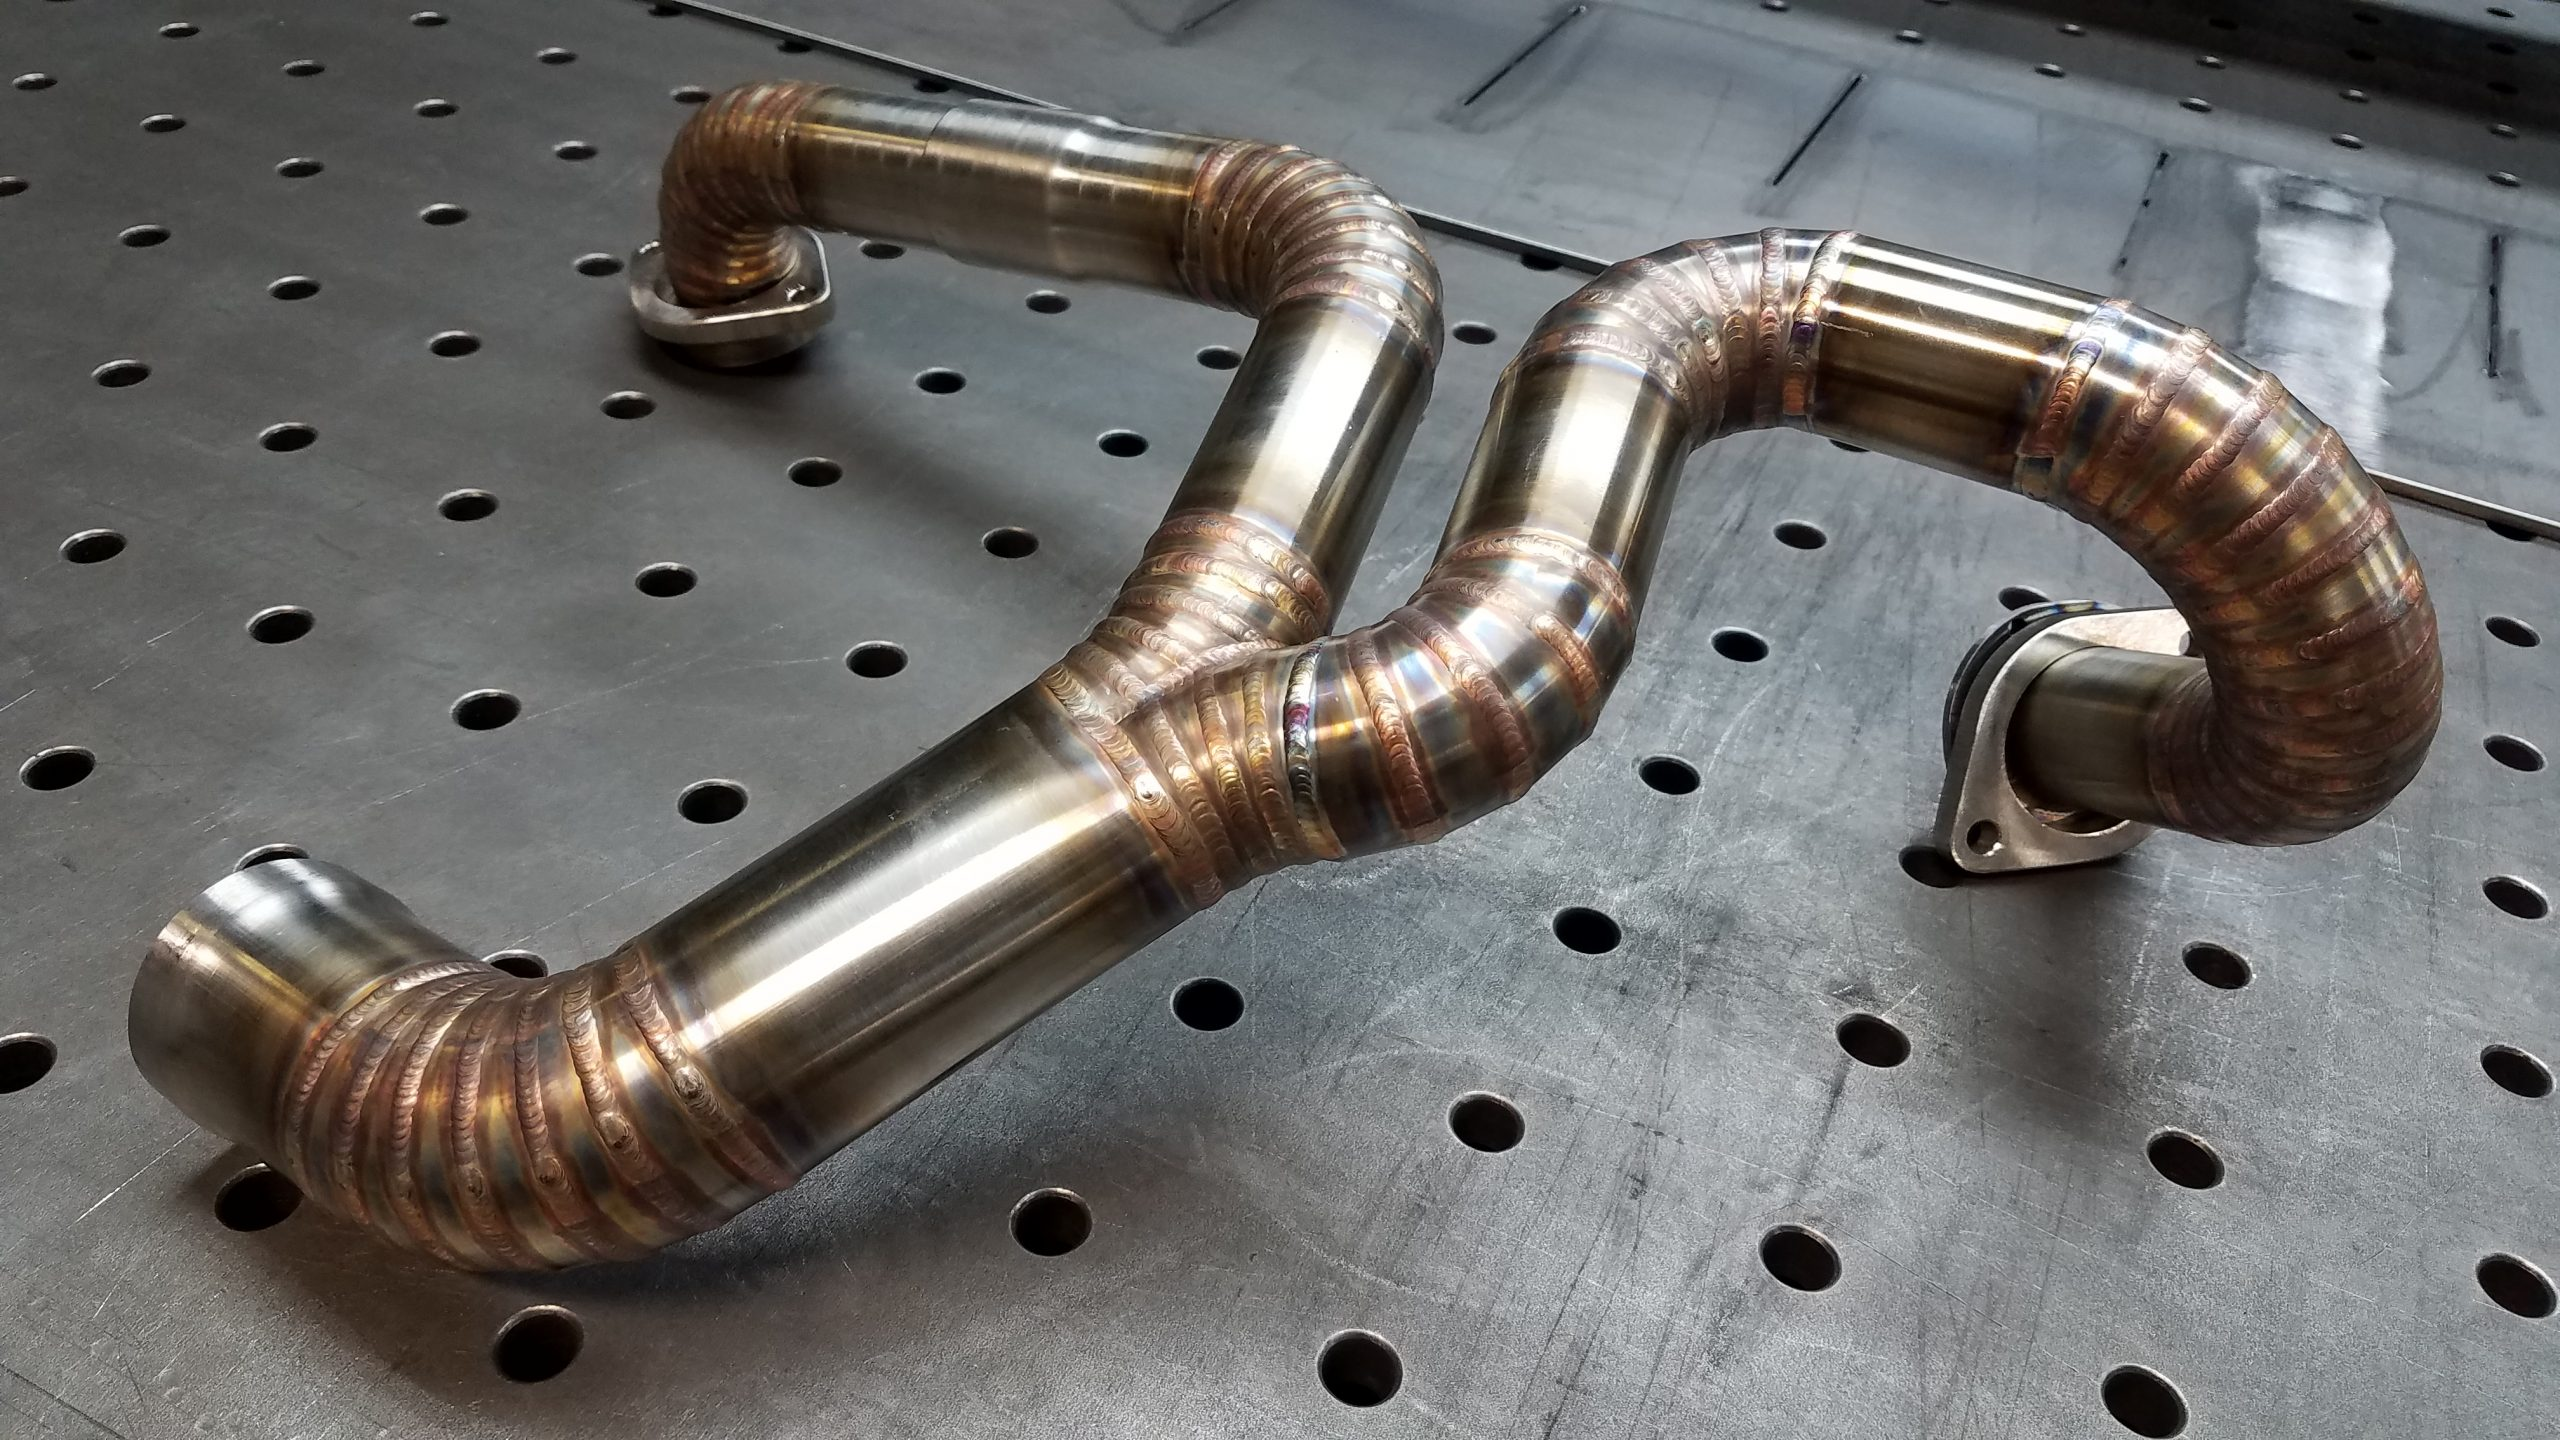 Custom Stainless Steel Exhaust For Yamaha Warrior 1700 Lots Of Pics 6l Designs